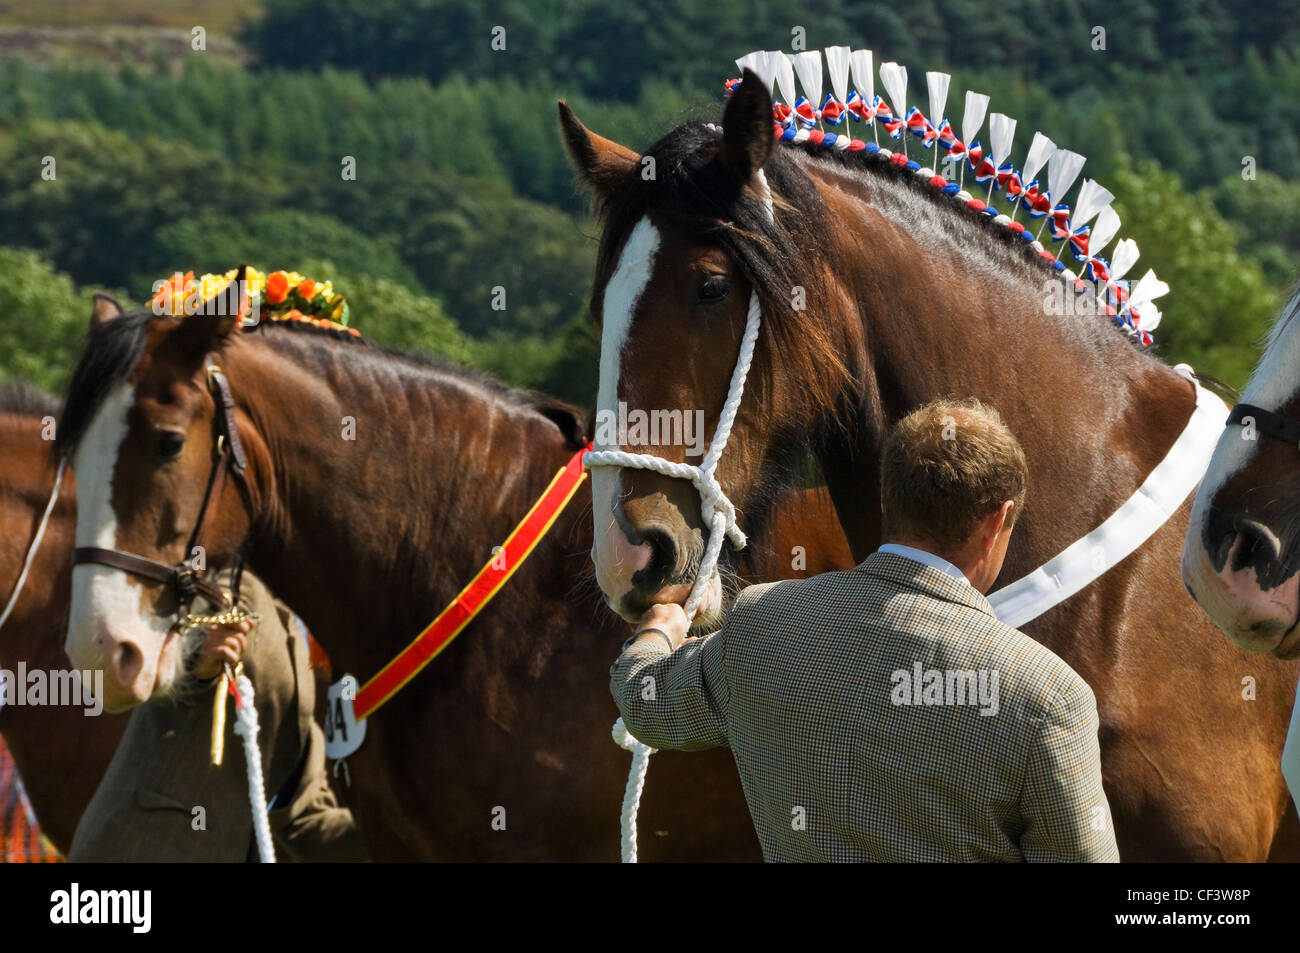 Heavy horses on show at the Rosedale & District Agricultural, Horticultural and Industrial Society Annual Show. - Stock Image